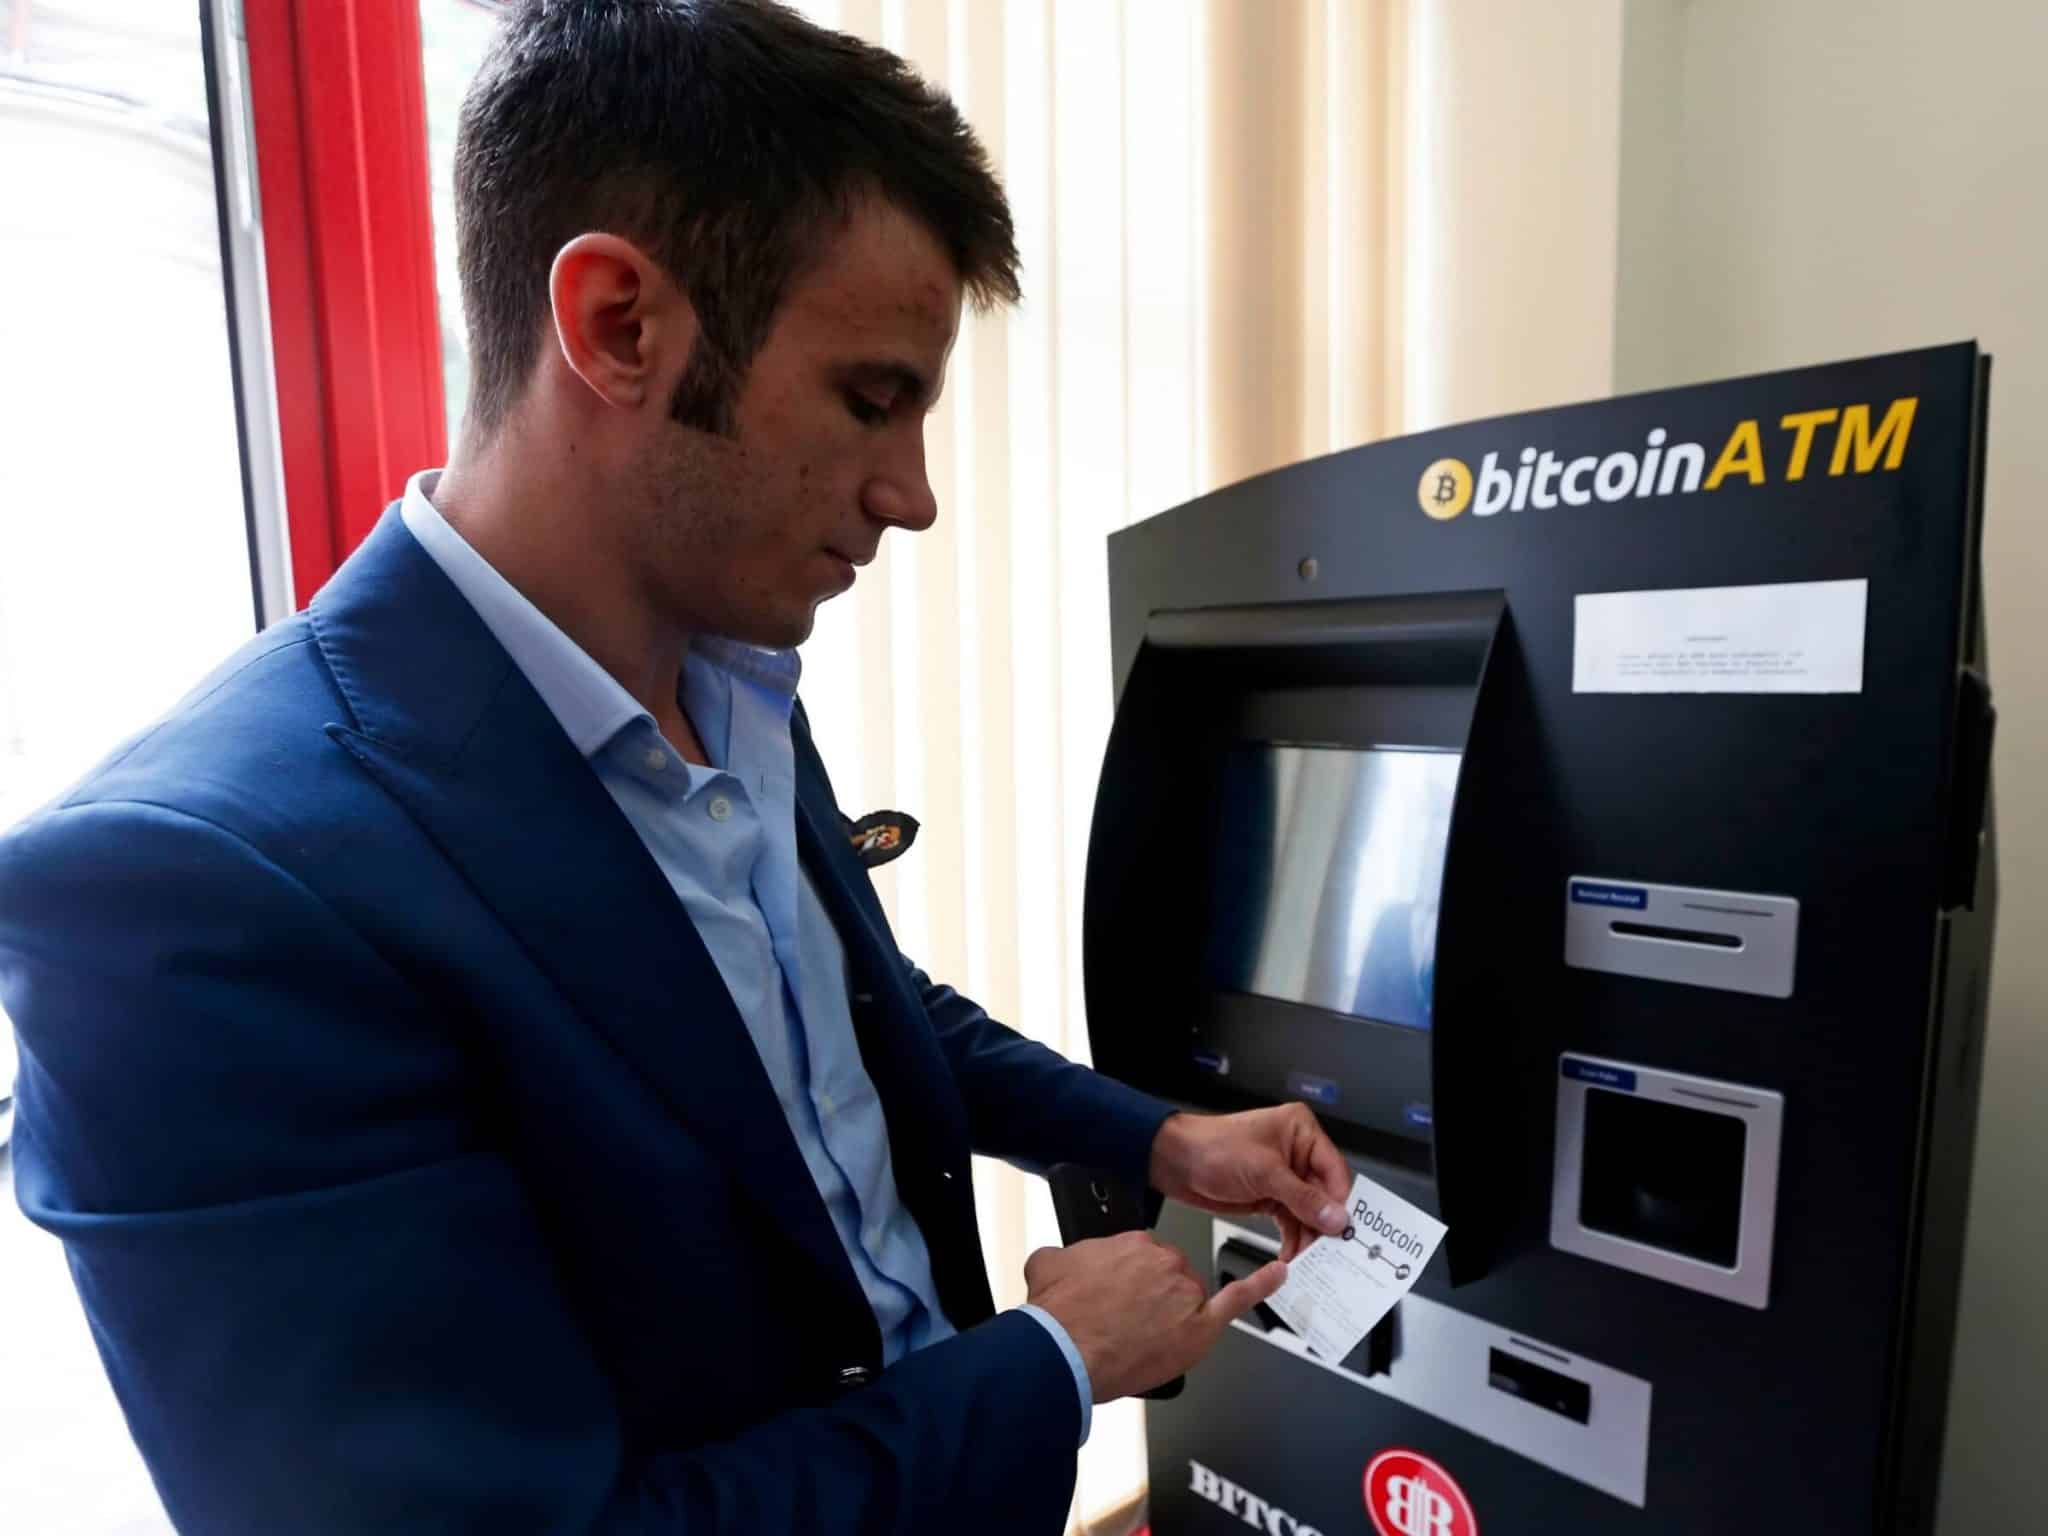 Bitcoin Bomb Threat Causes Panic in US, Canada